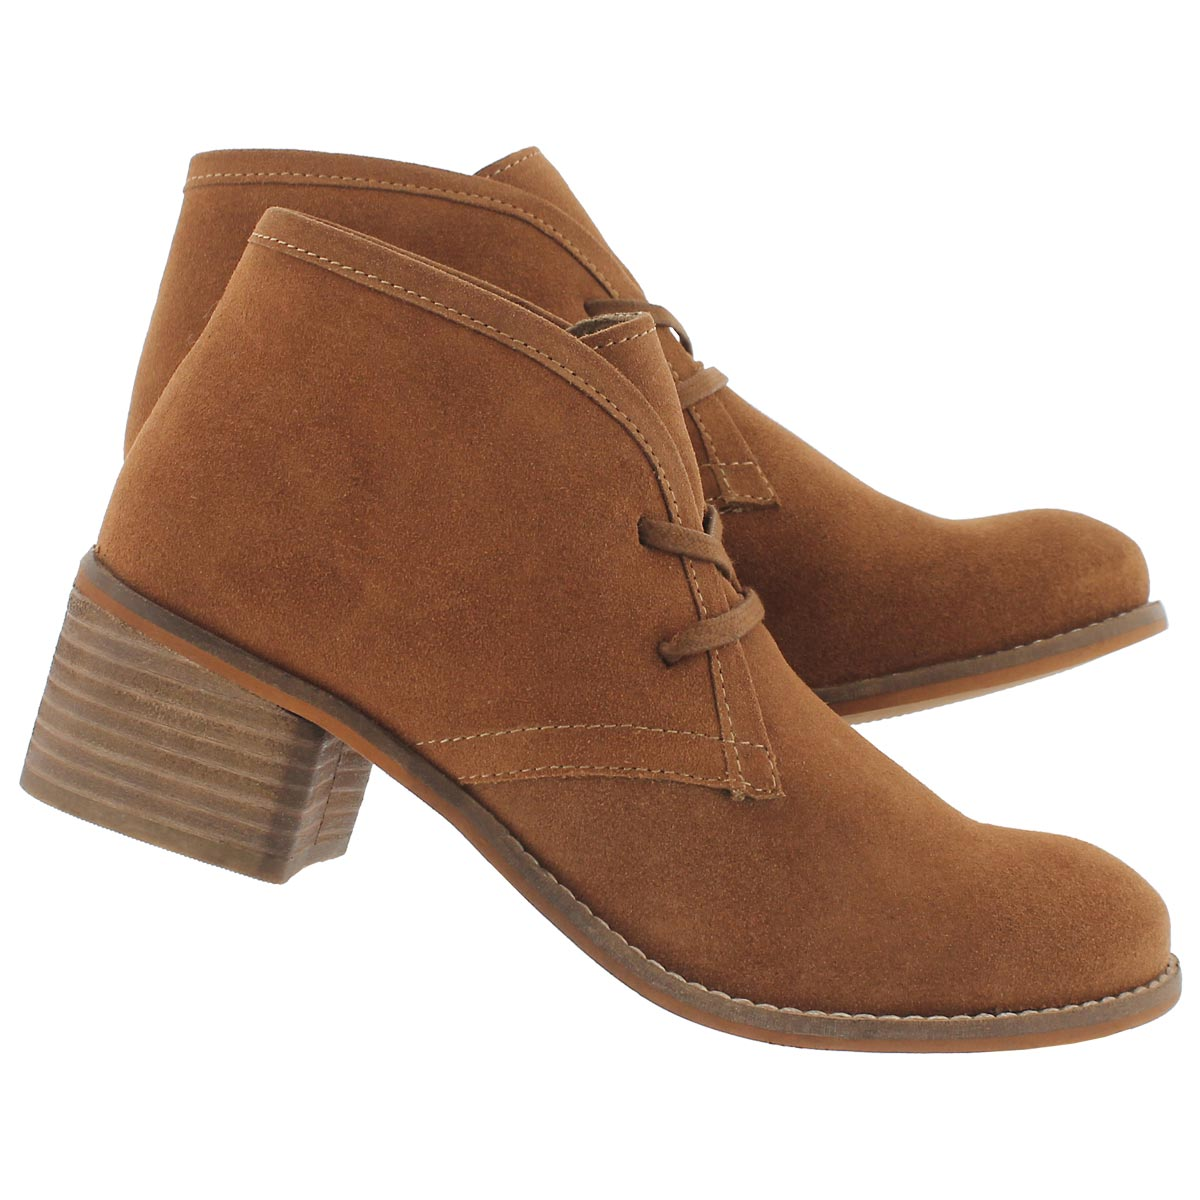 Lds Fiona dark tan lace up casual bootie